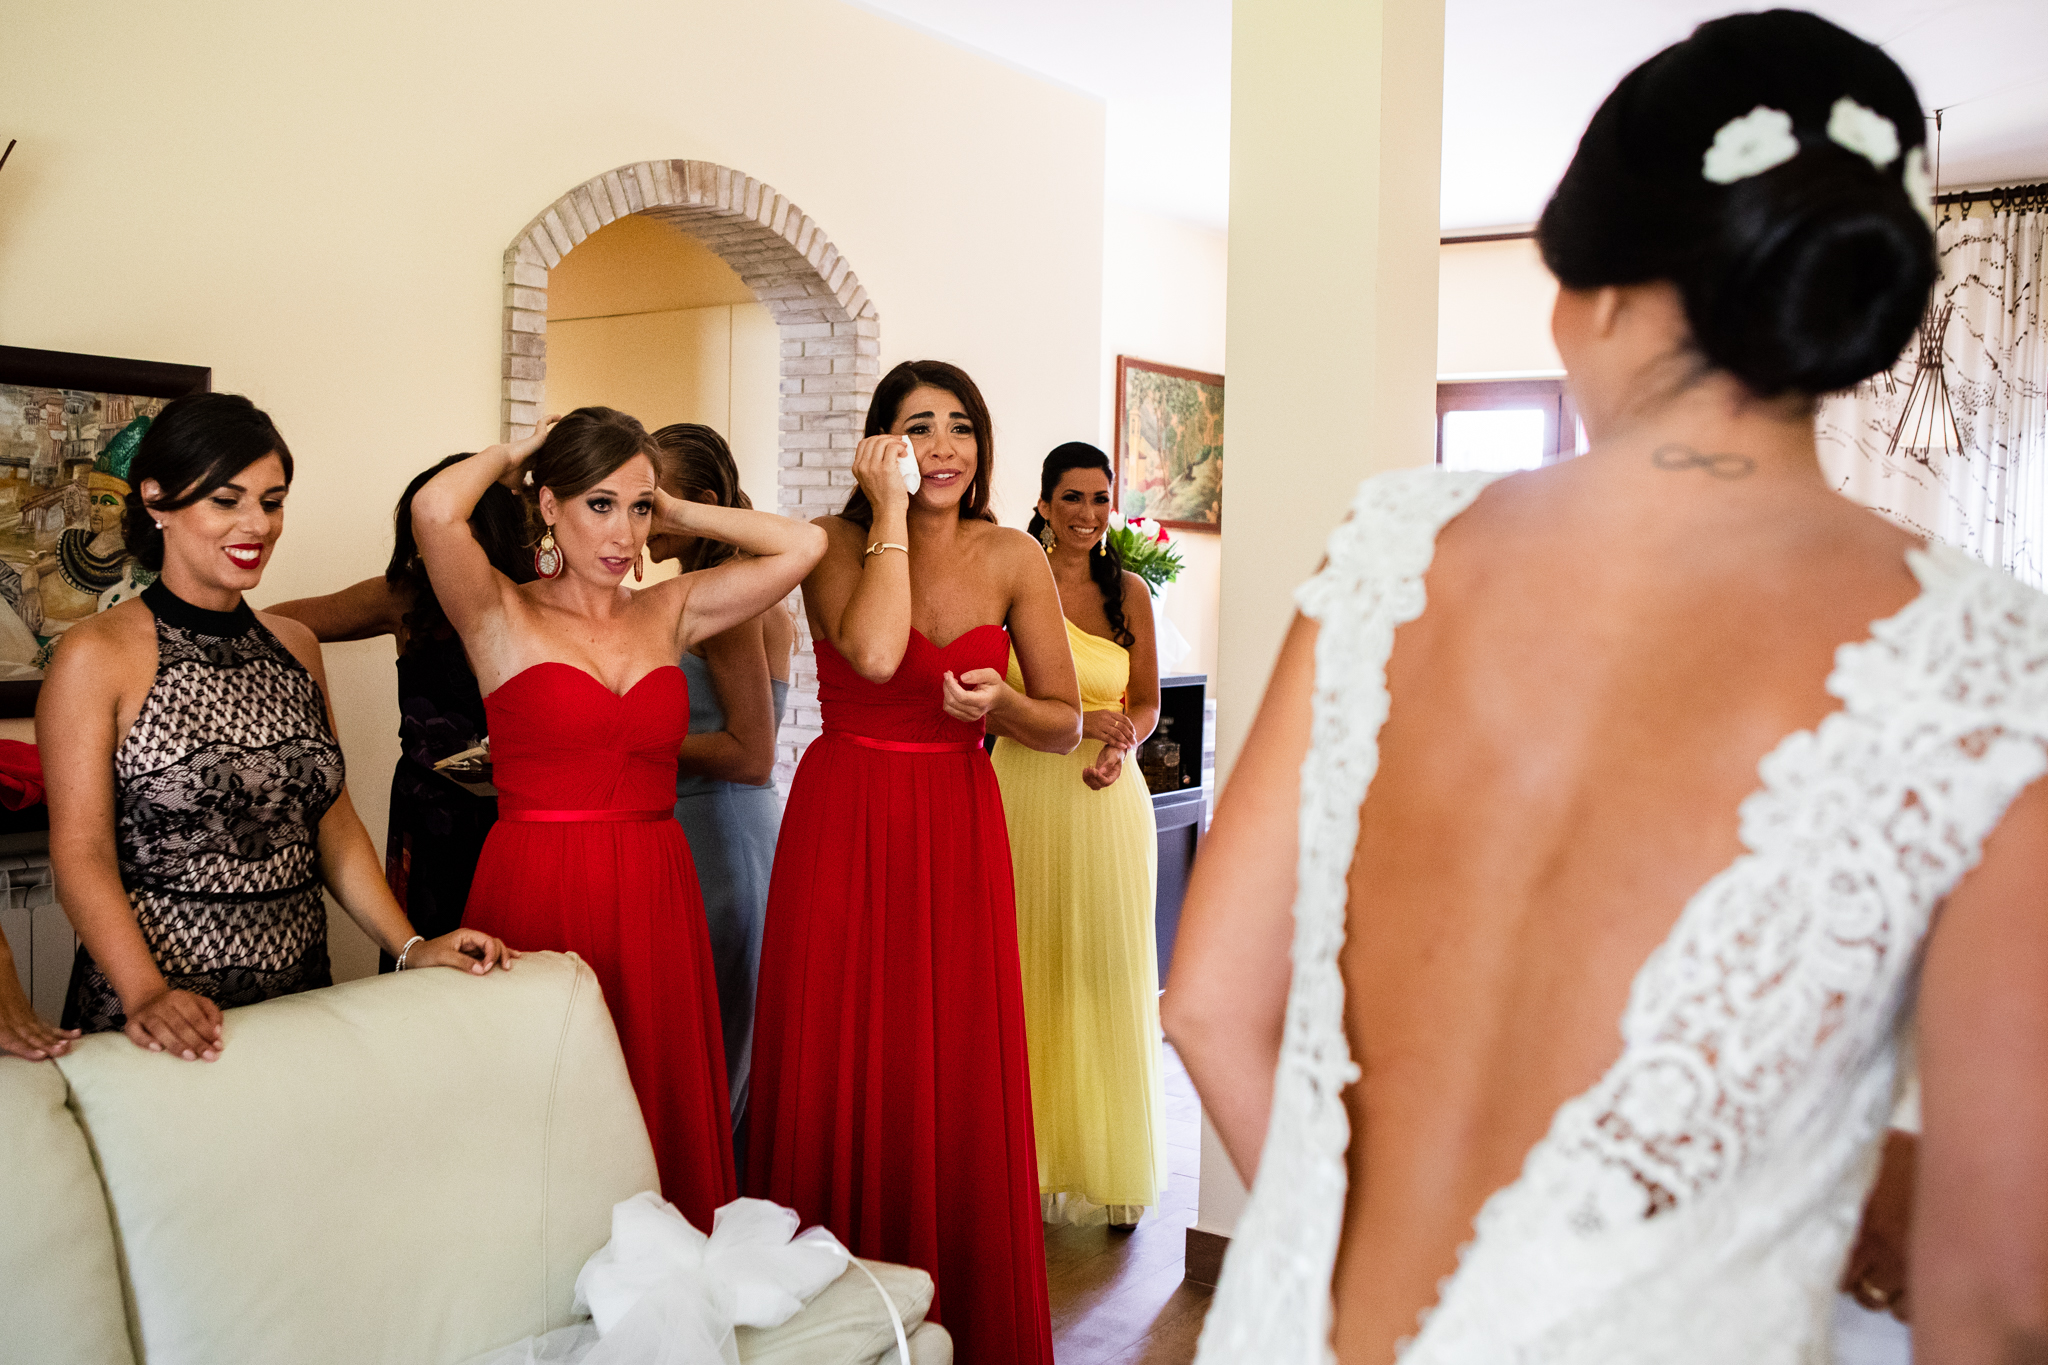 Best-wedding-photographer-in-Sicily- Catania-10.jpg